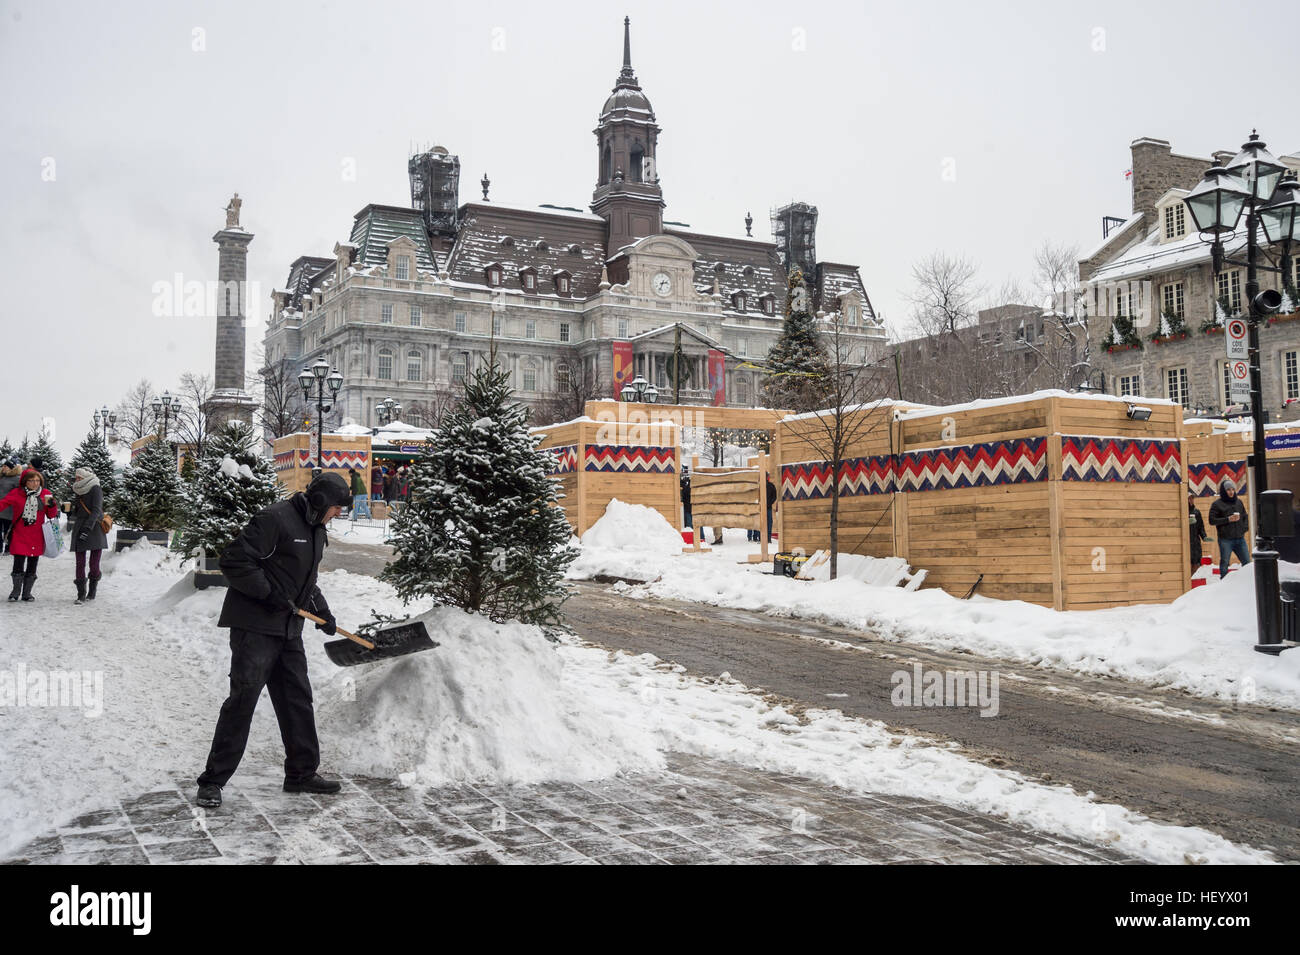 Montreal, CA - 17 December 2016: Man with snow shovel cleans sidewalk during Christmas market on Place Jacques Cartier - Stock Image